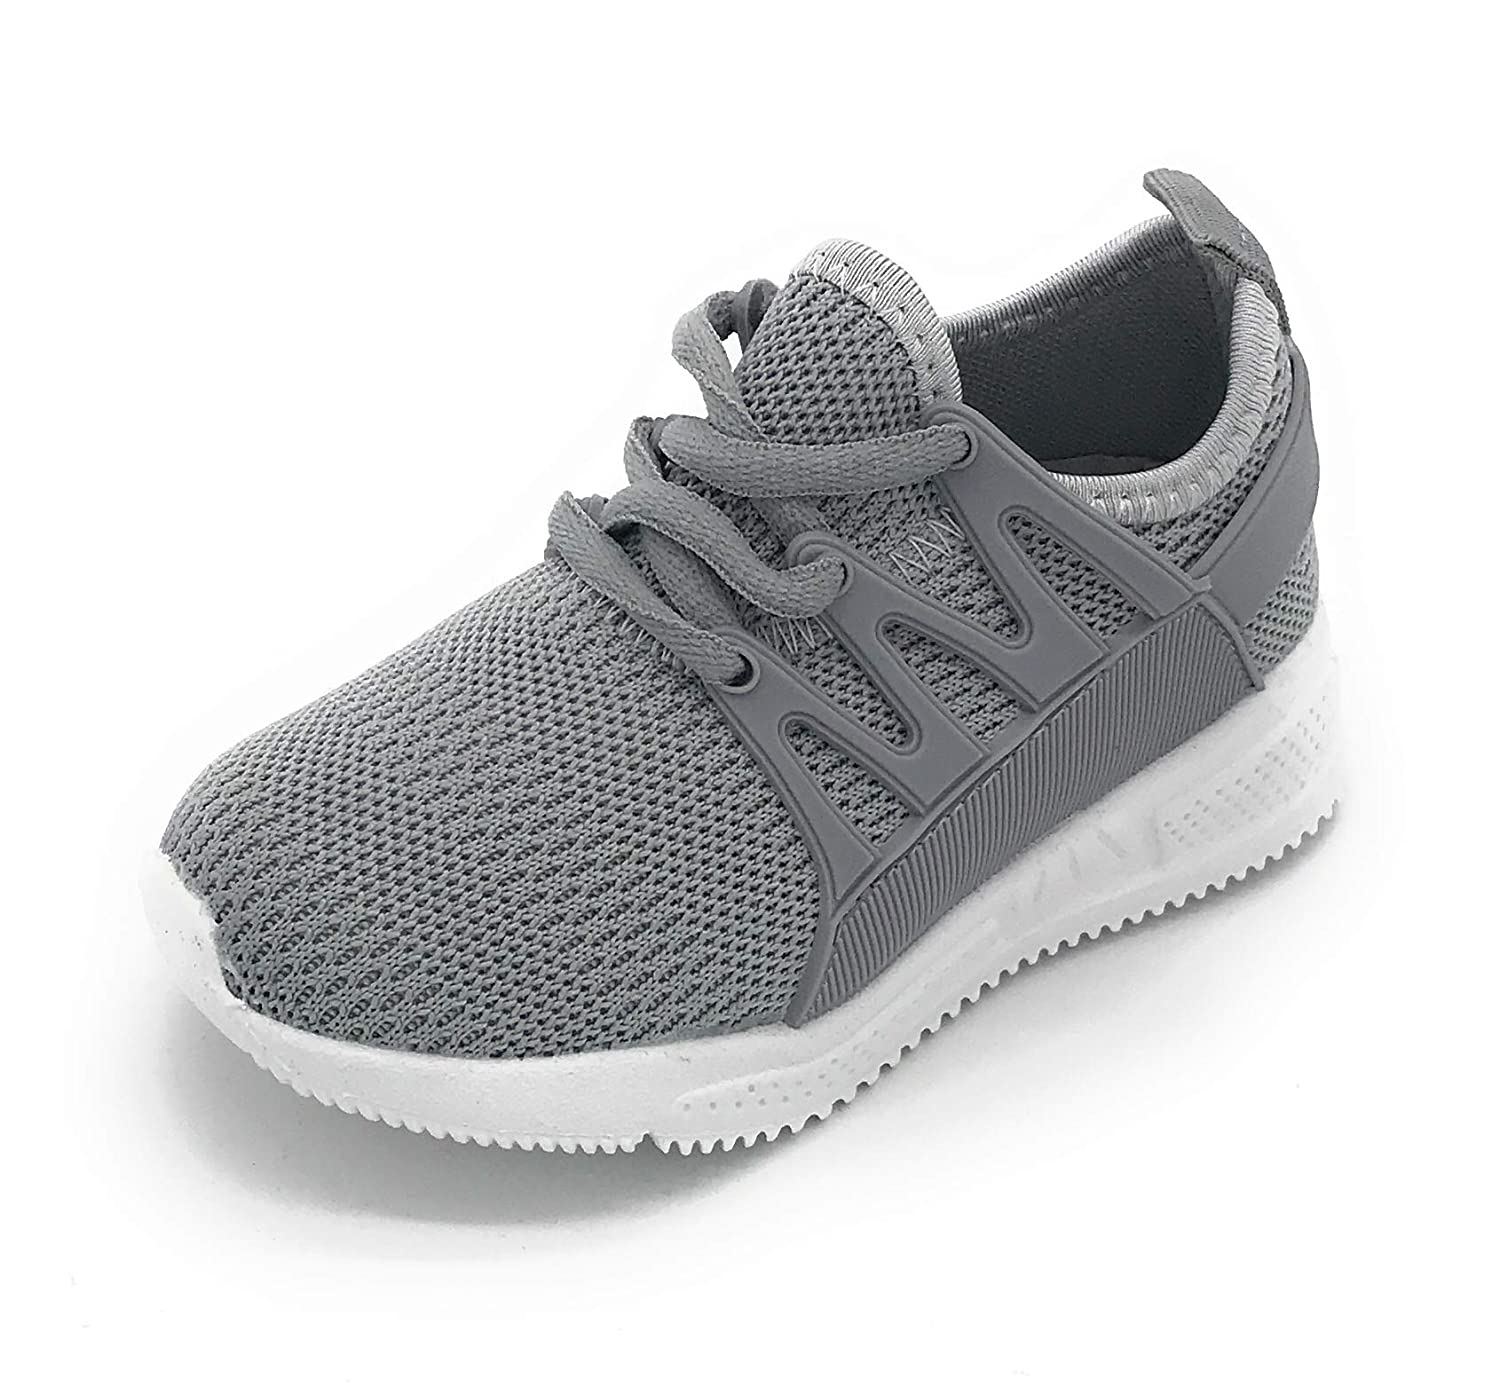 Blue Berry Toddler Breathable Fashion Light Weight Sneakers Athletic Sports School Shoes